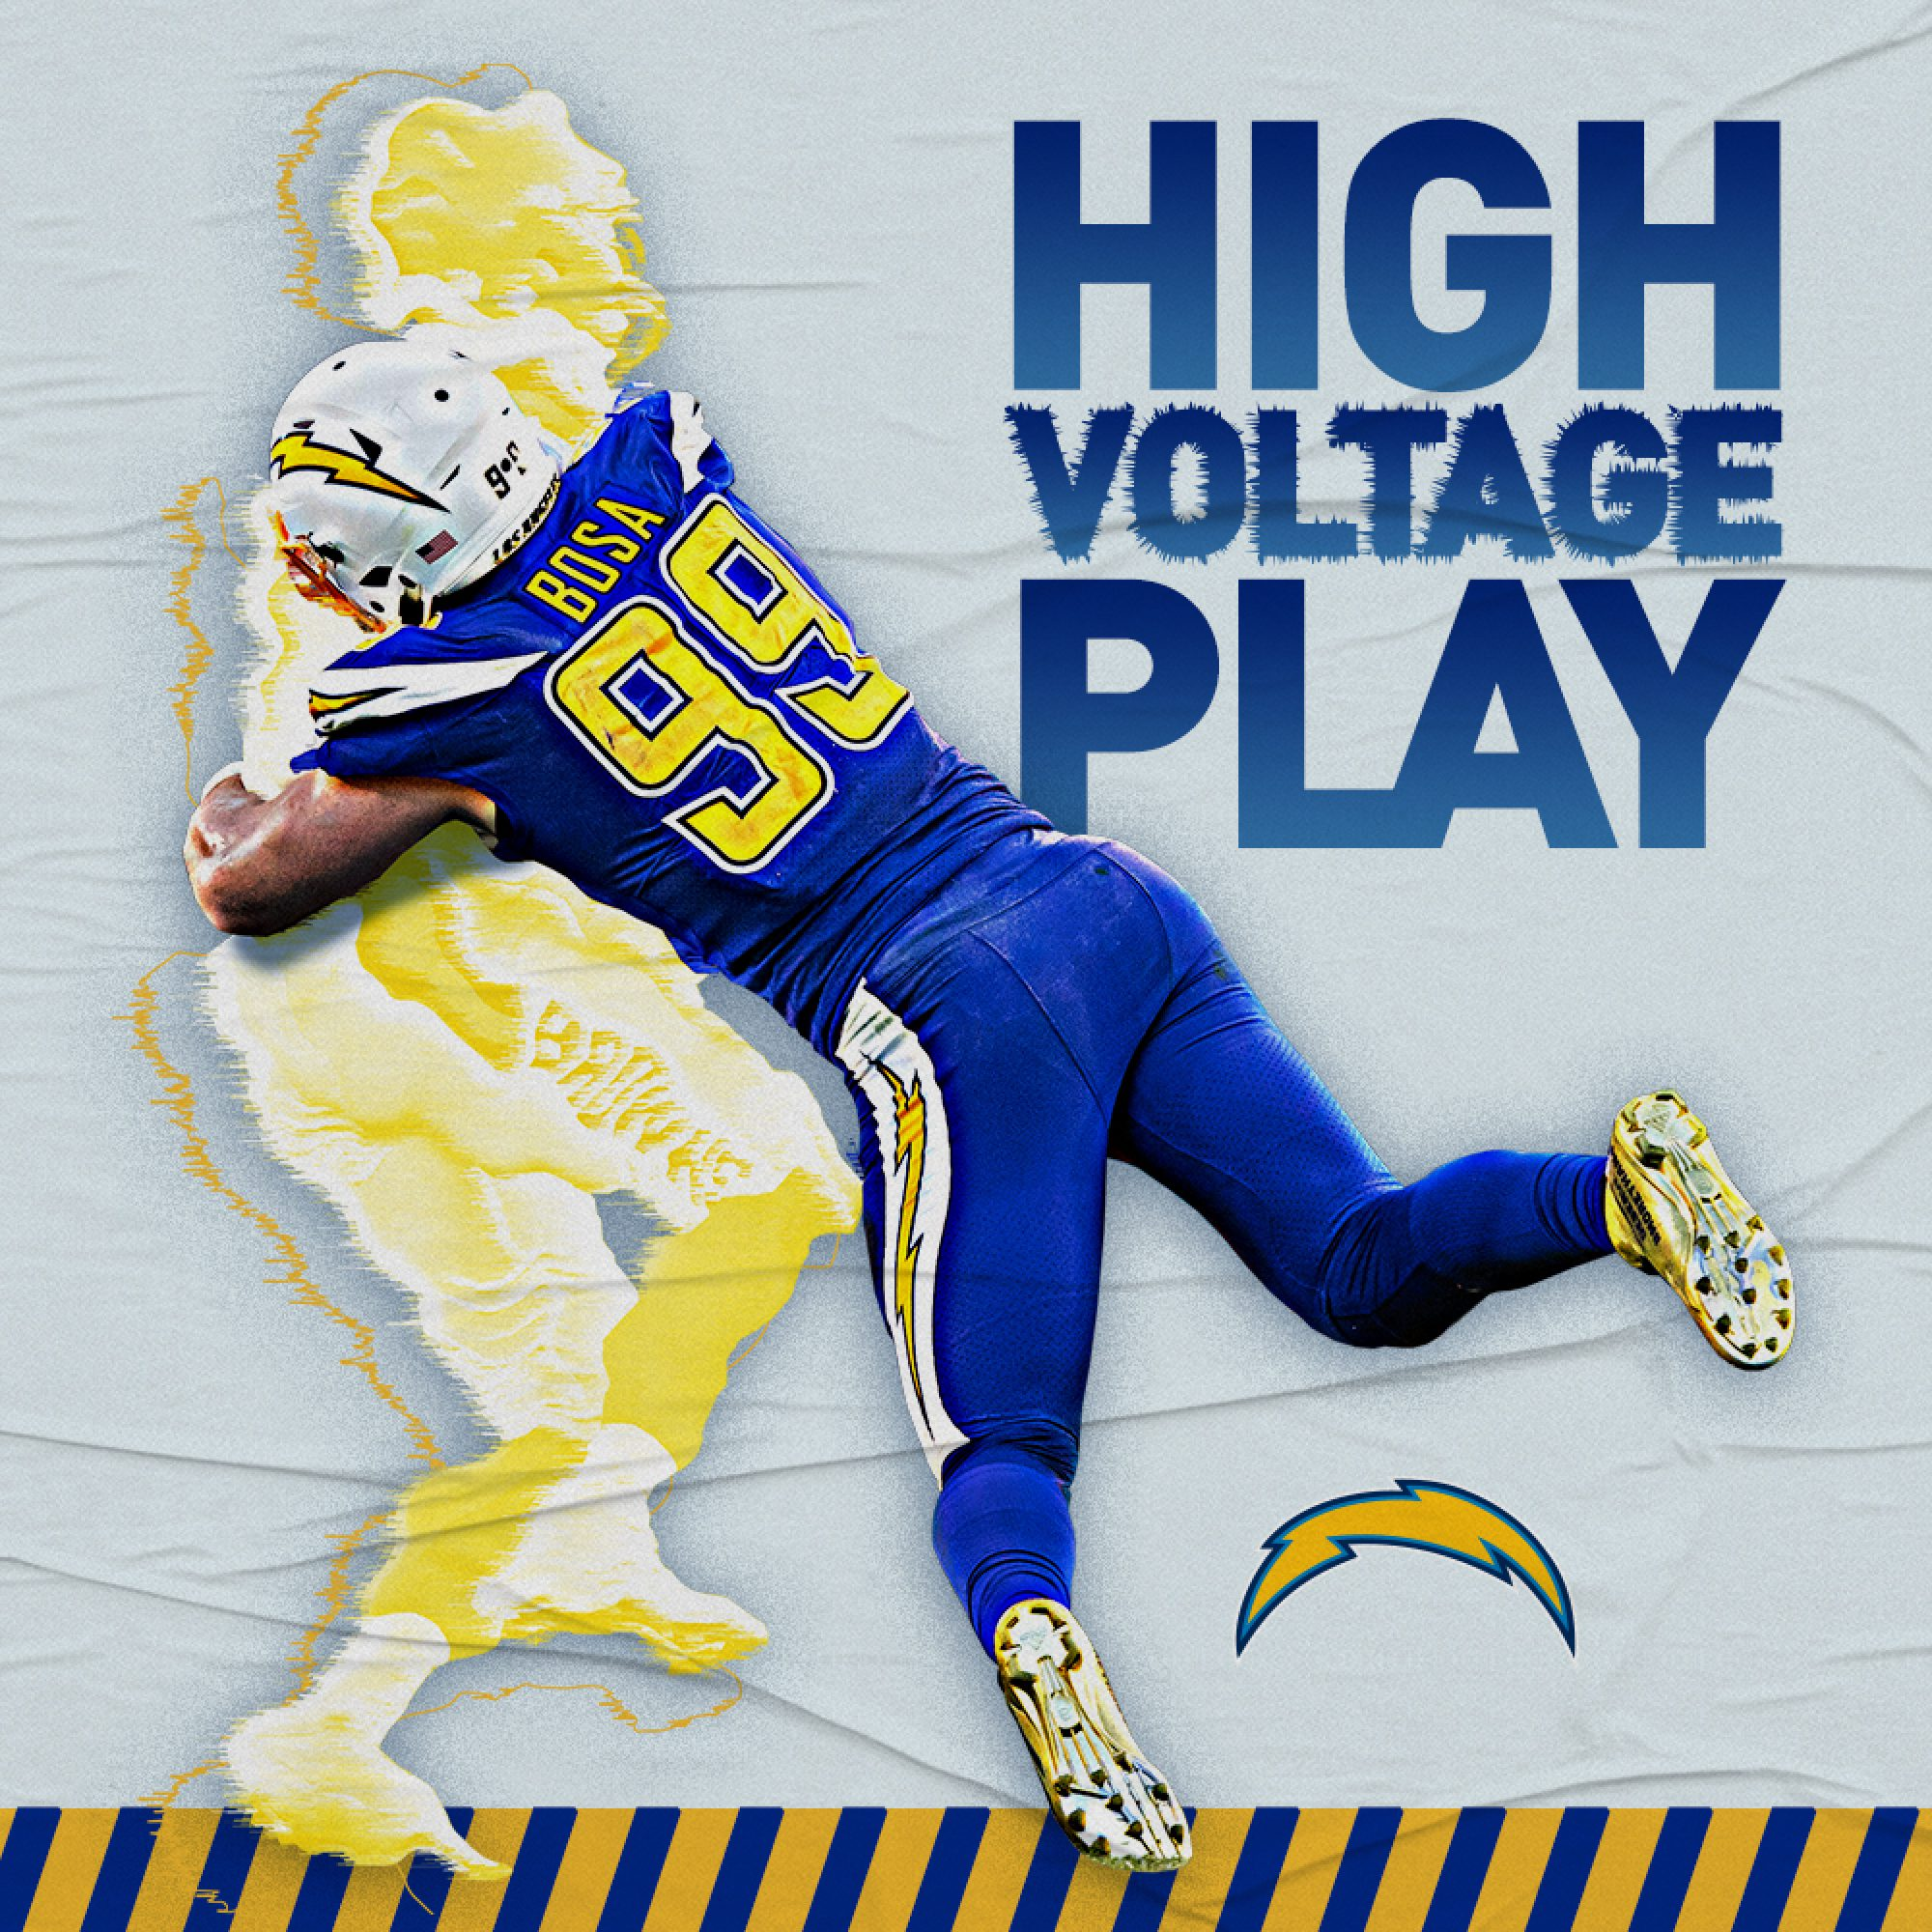 chargers_part02_01c